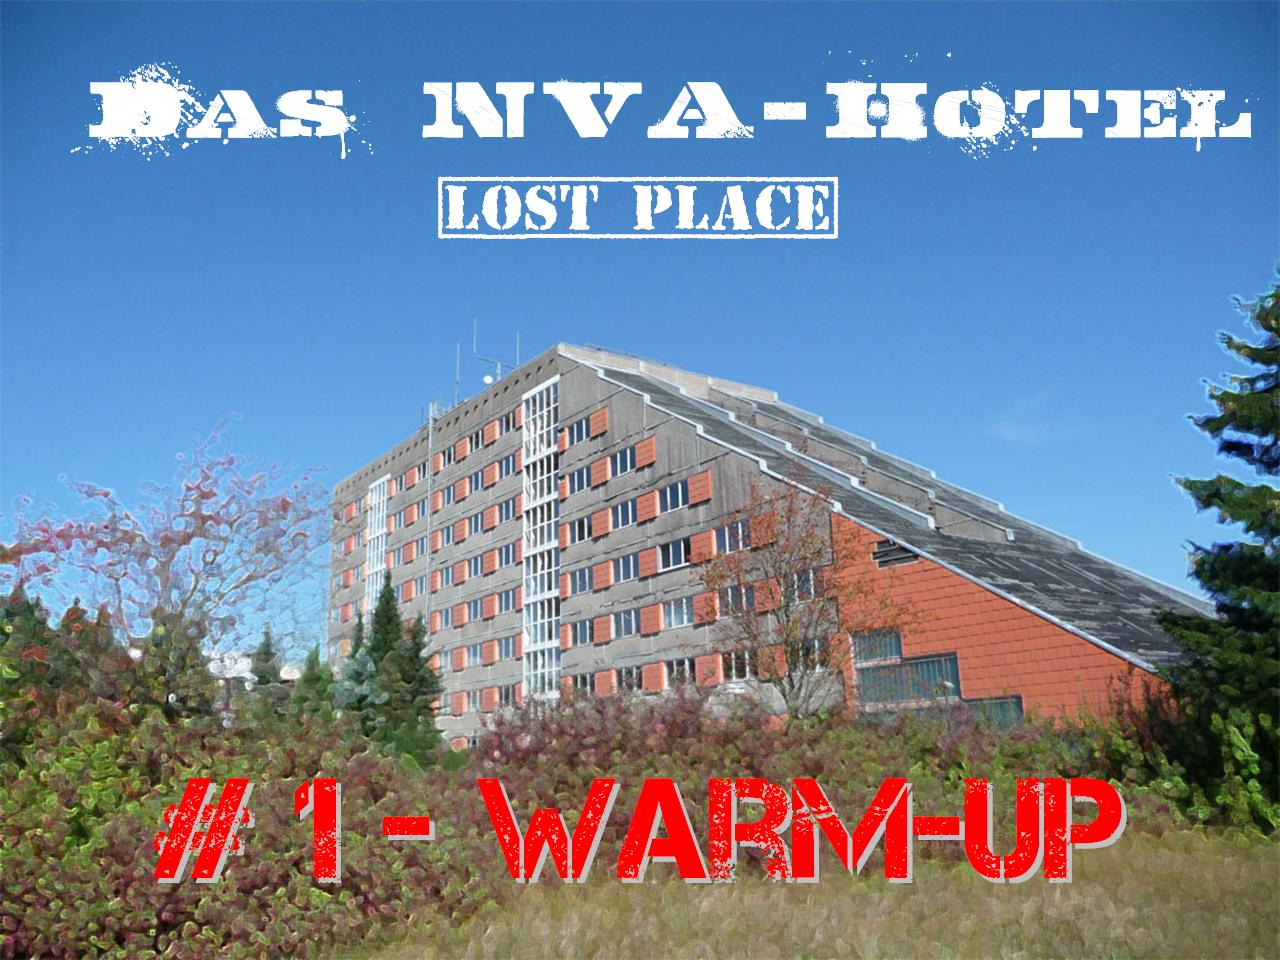 DAS NVA-HOTEL (LOST PLACE) - # 1 Warm-Up